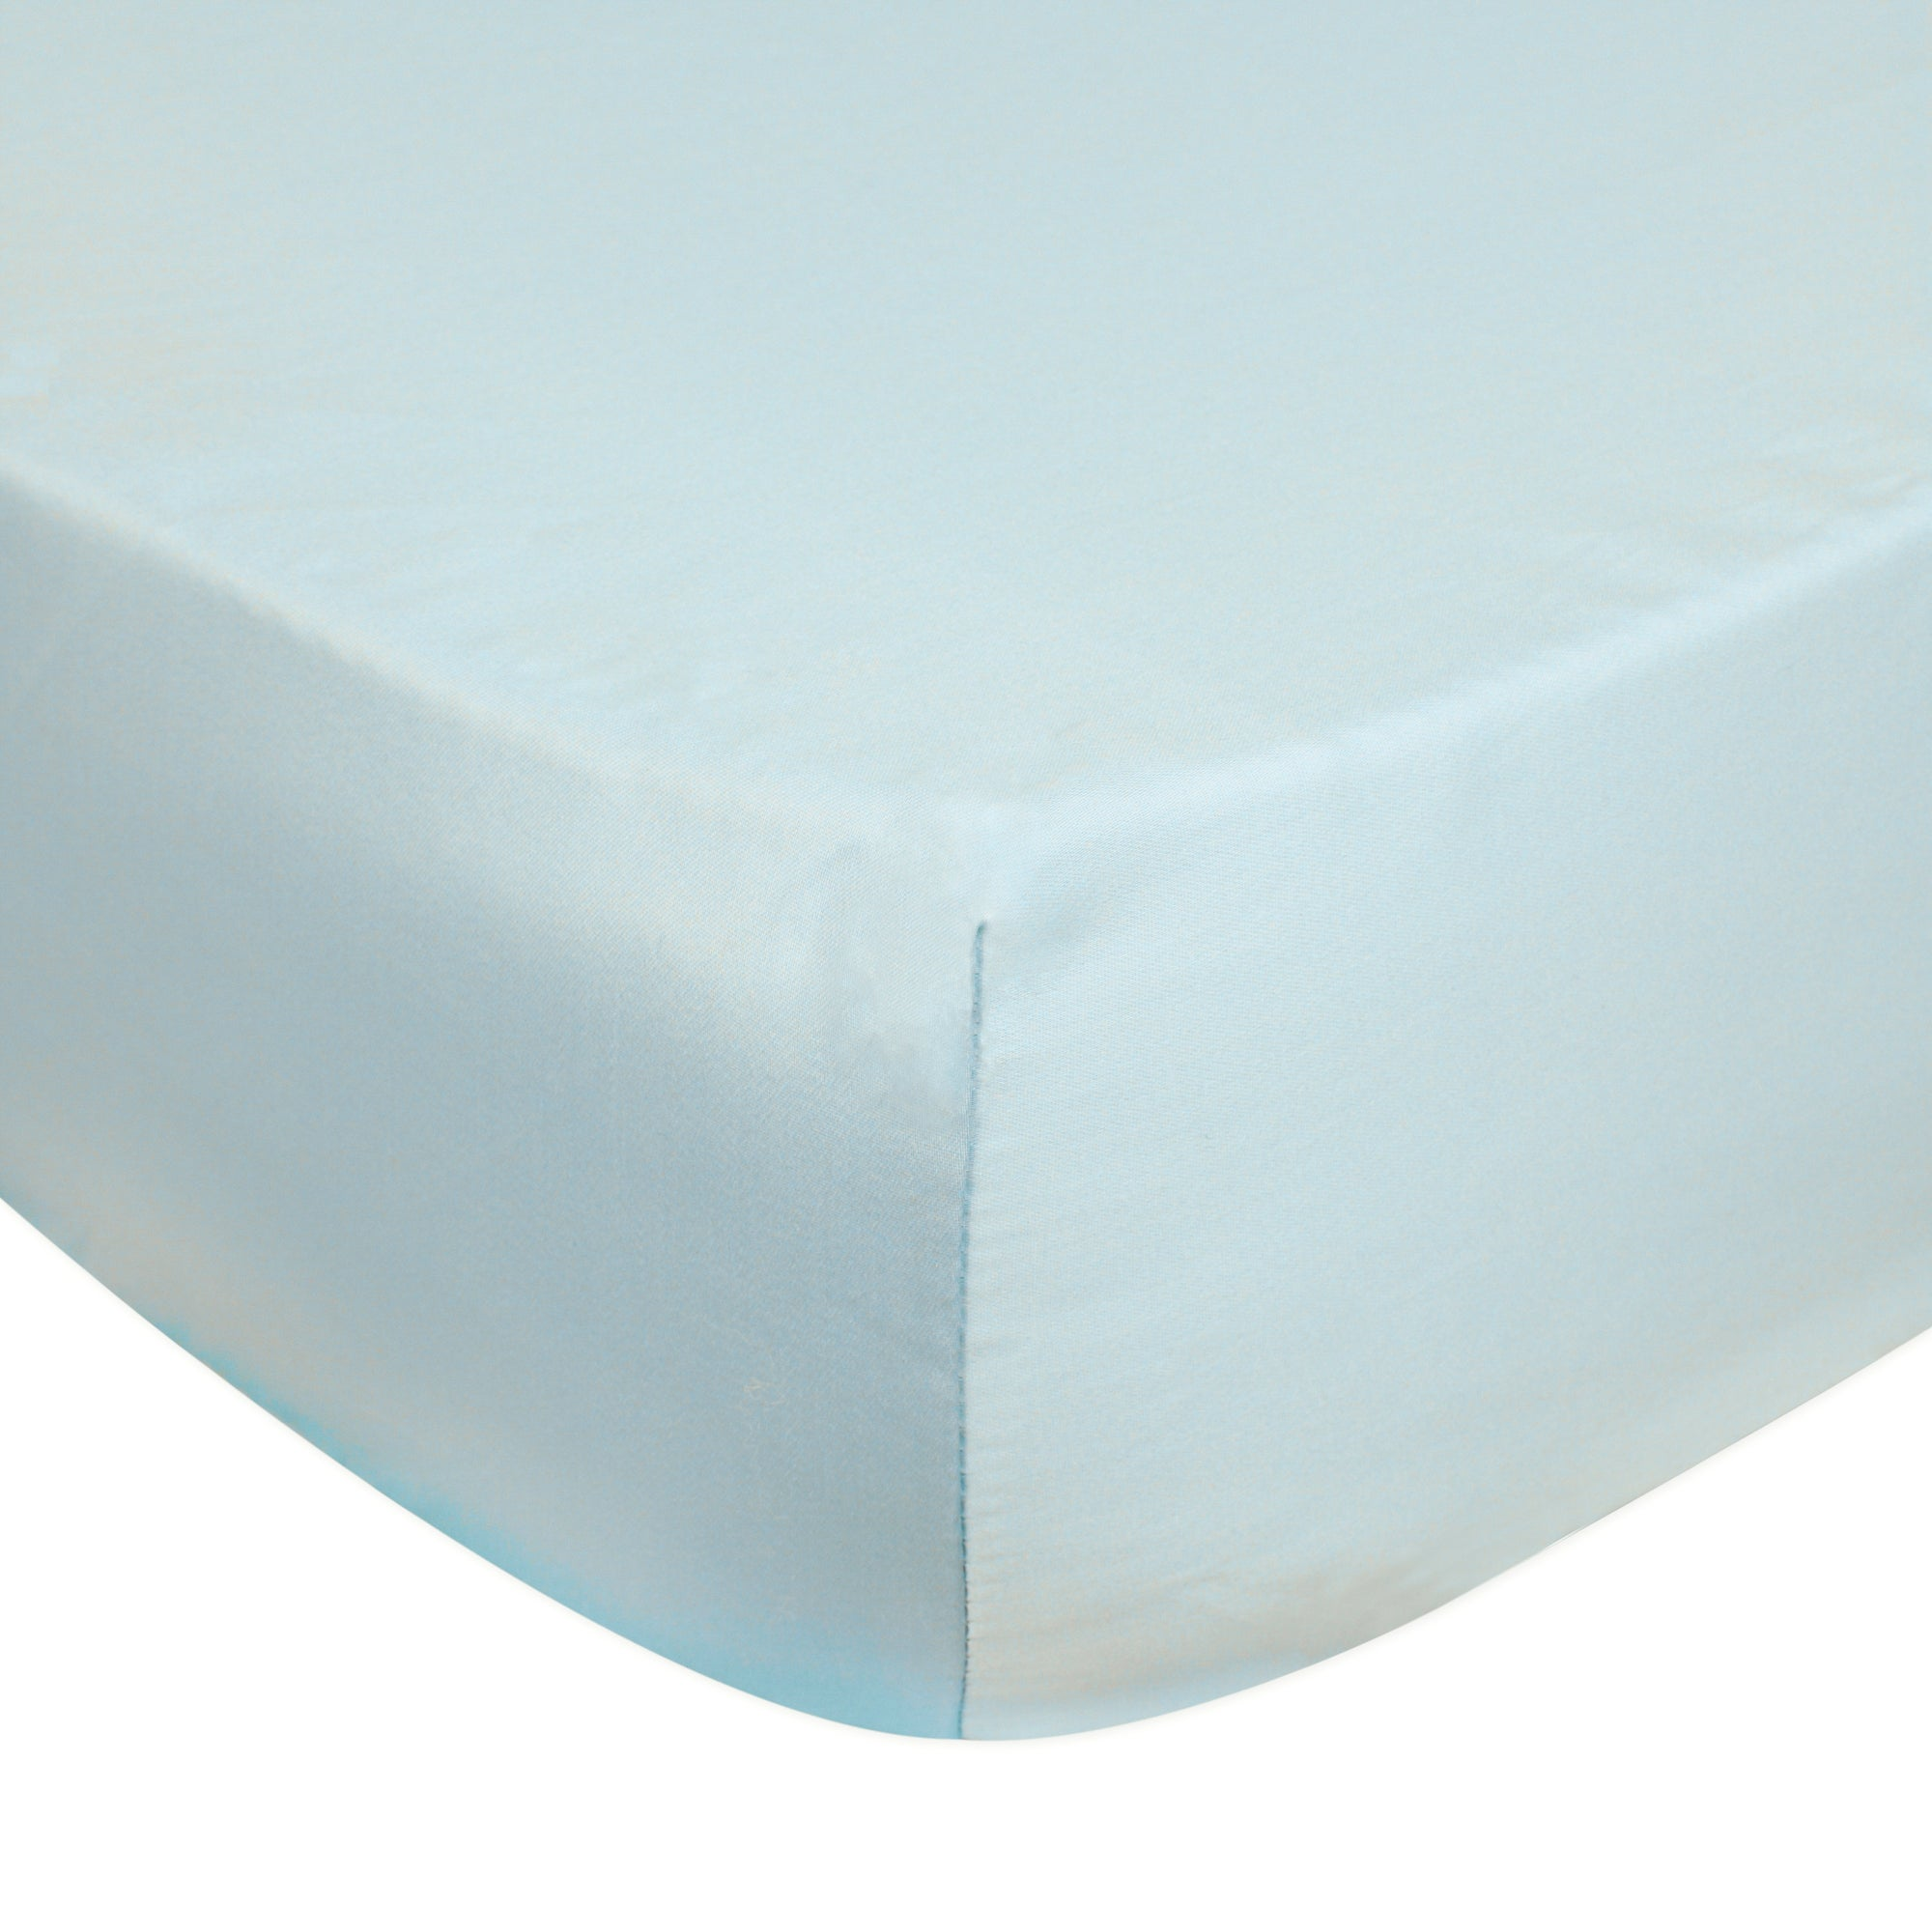 Dorma Plain Dye 350 Thread Count Duck Egg Blue Fitted Sheet Duck Egg (Blue)